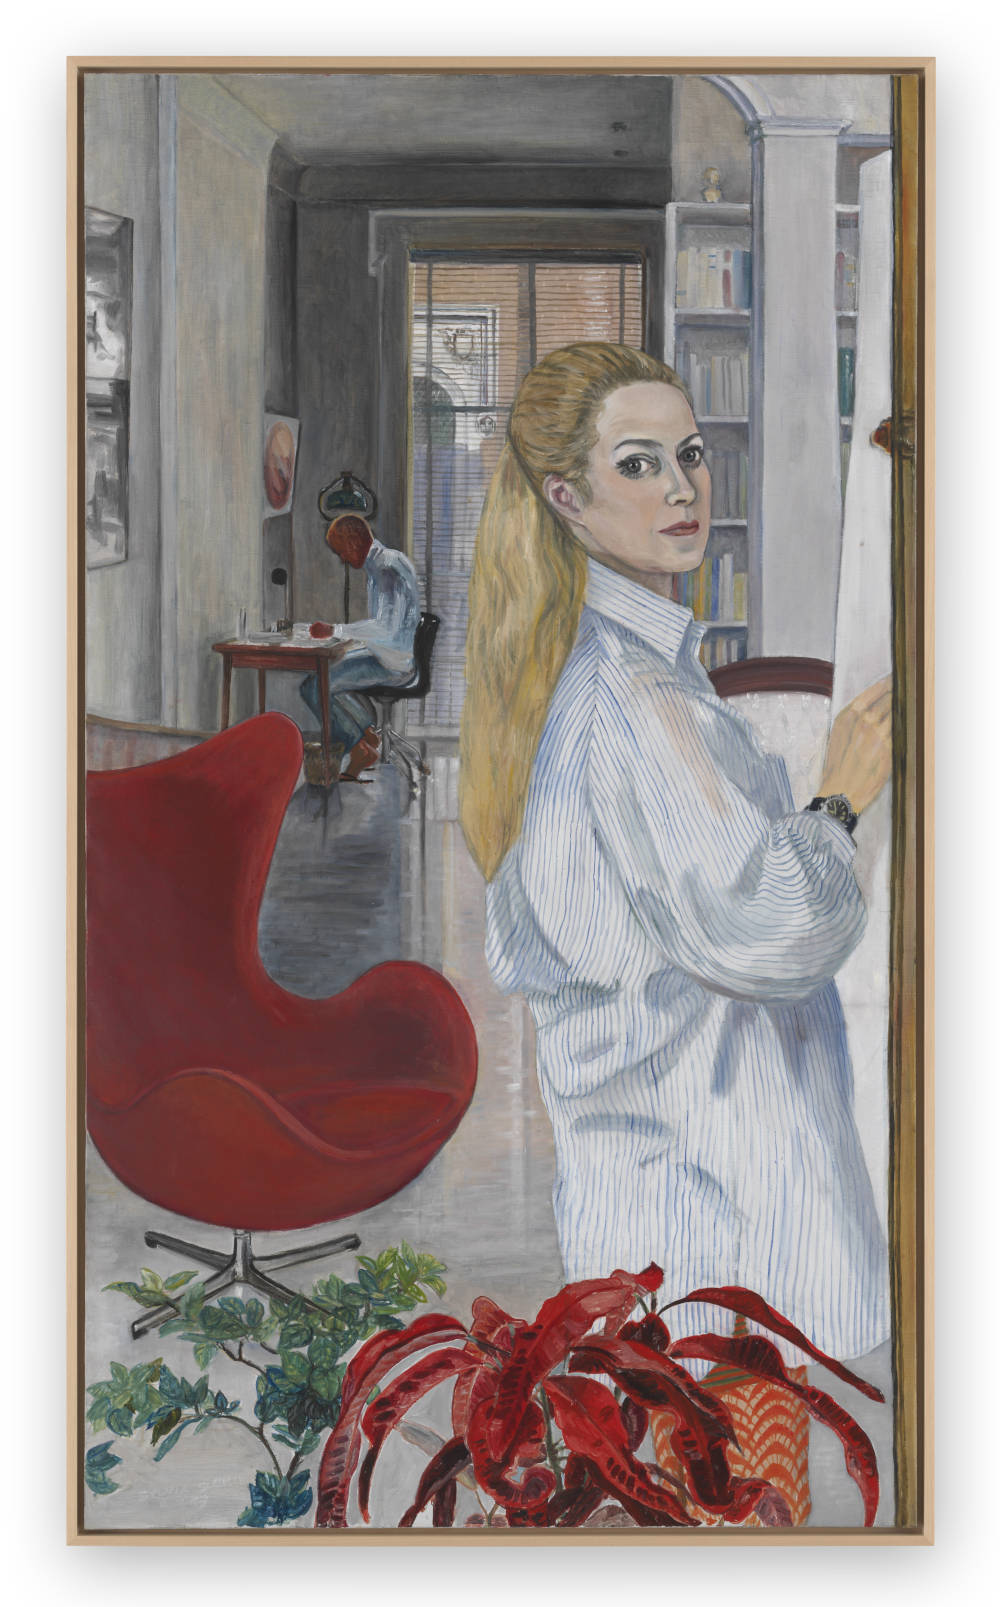 Sylvia Sleigh, Working at Home, 1969. Oil on canvas 142.2 x 81.3 cm / 56 x 32 inches. Courtesy of the Estate of Sylvia Sleigh and the Ursula Hauser Collection, Switzerland. Photo credit: Stefan Altenburger Photography Zürich